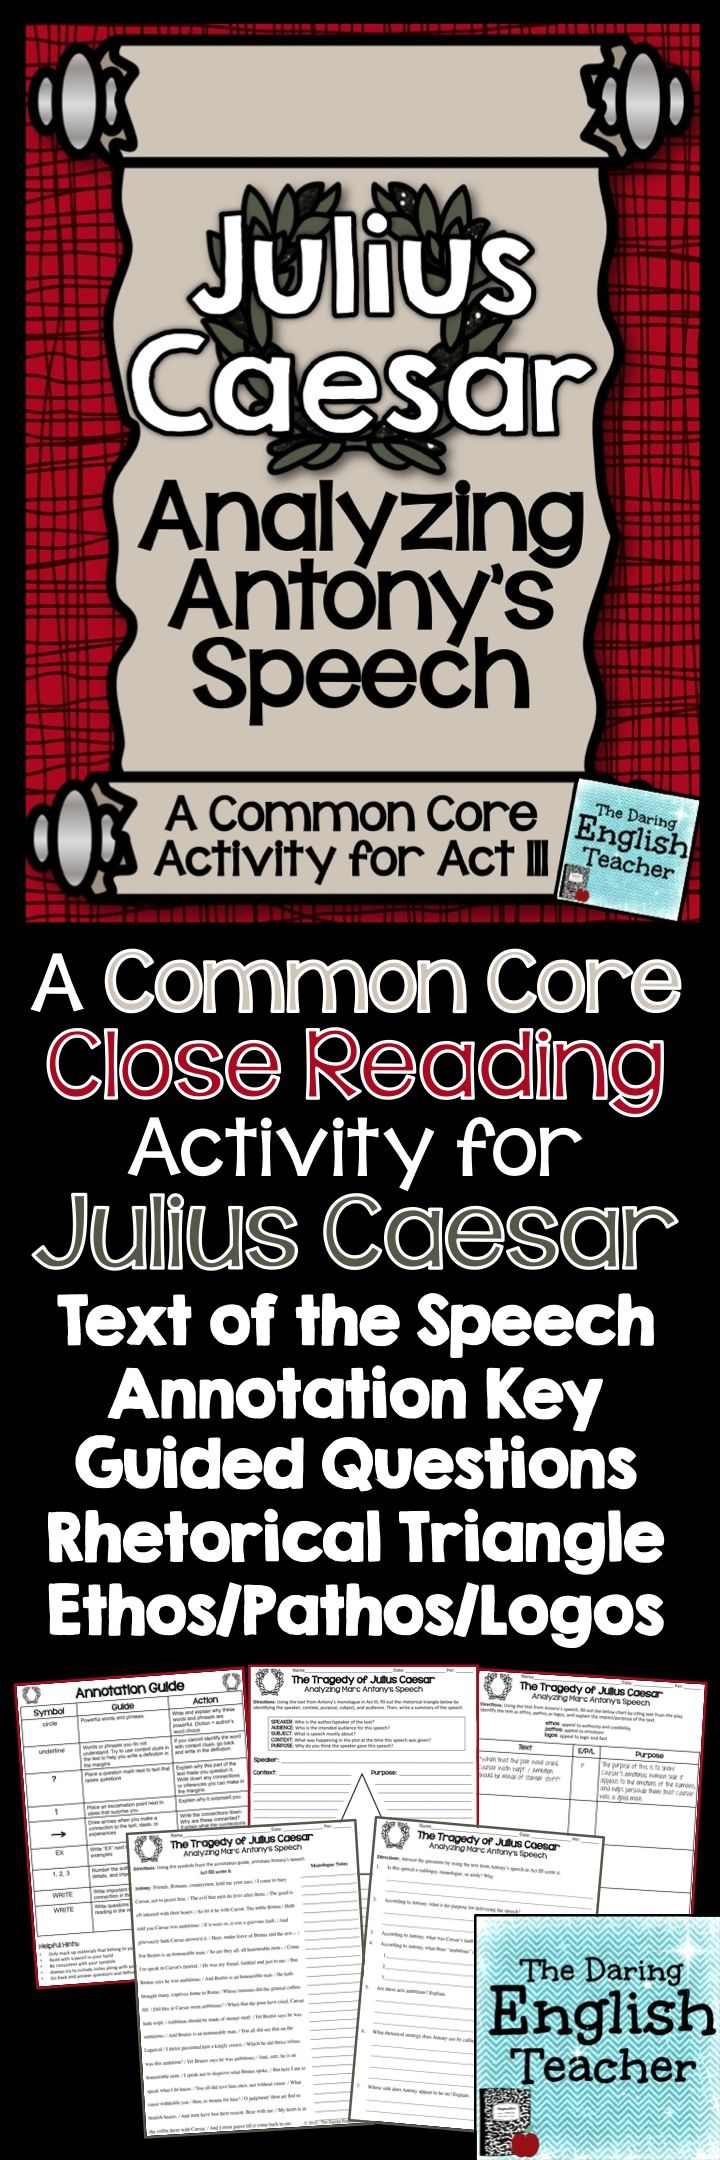 A common core close reading activity for Julius Caesar. #highschoolenglish #Shakespeare